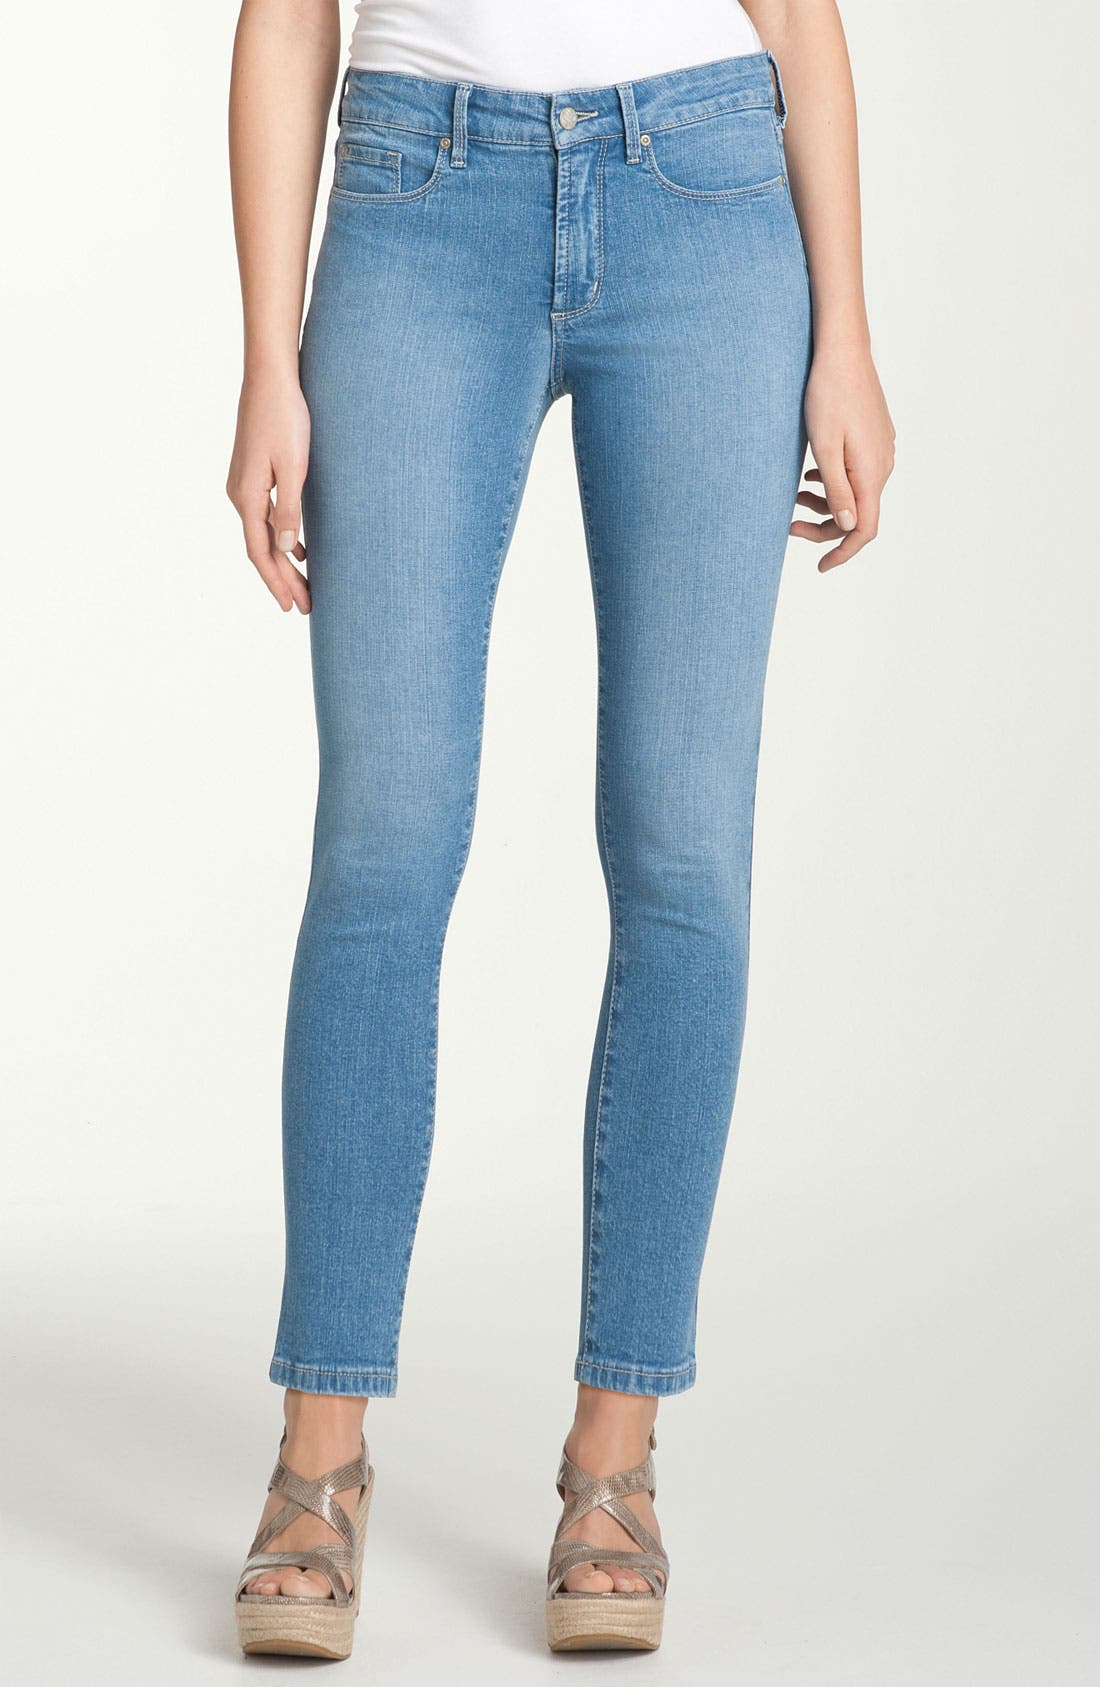 Alternate Image 1 Selected - NYDJ 'Cora' Crop Jeans (Petite)